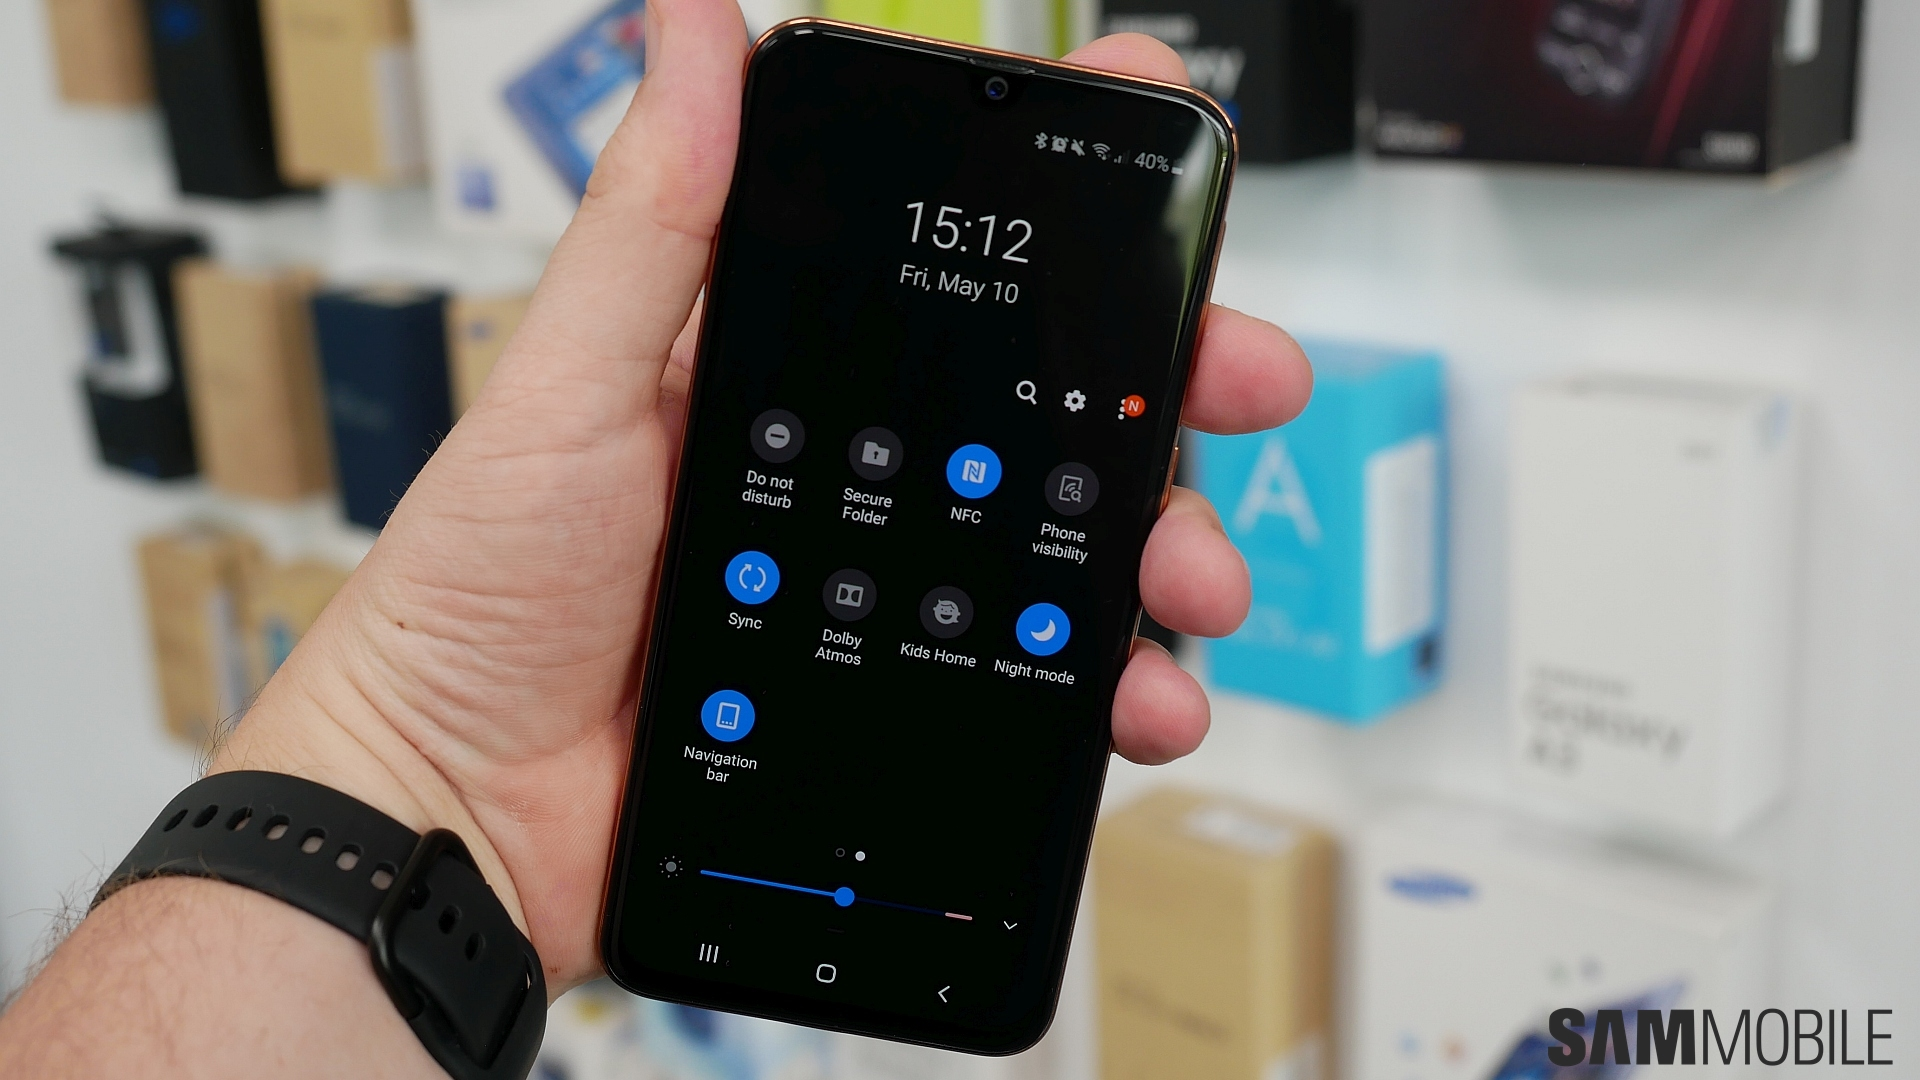 Samsung Galaxy A40 review: A compact no-frills mid-range